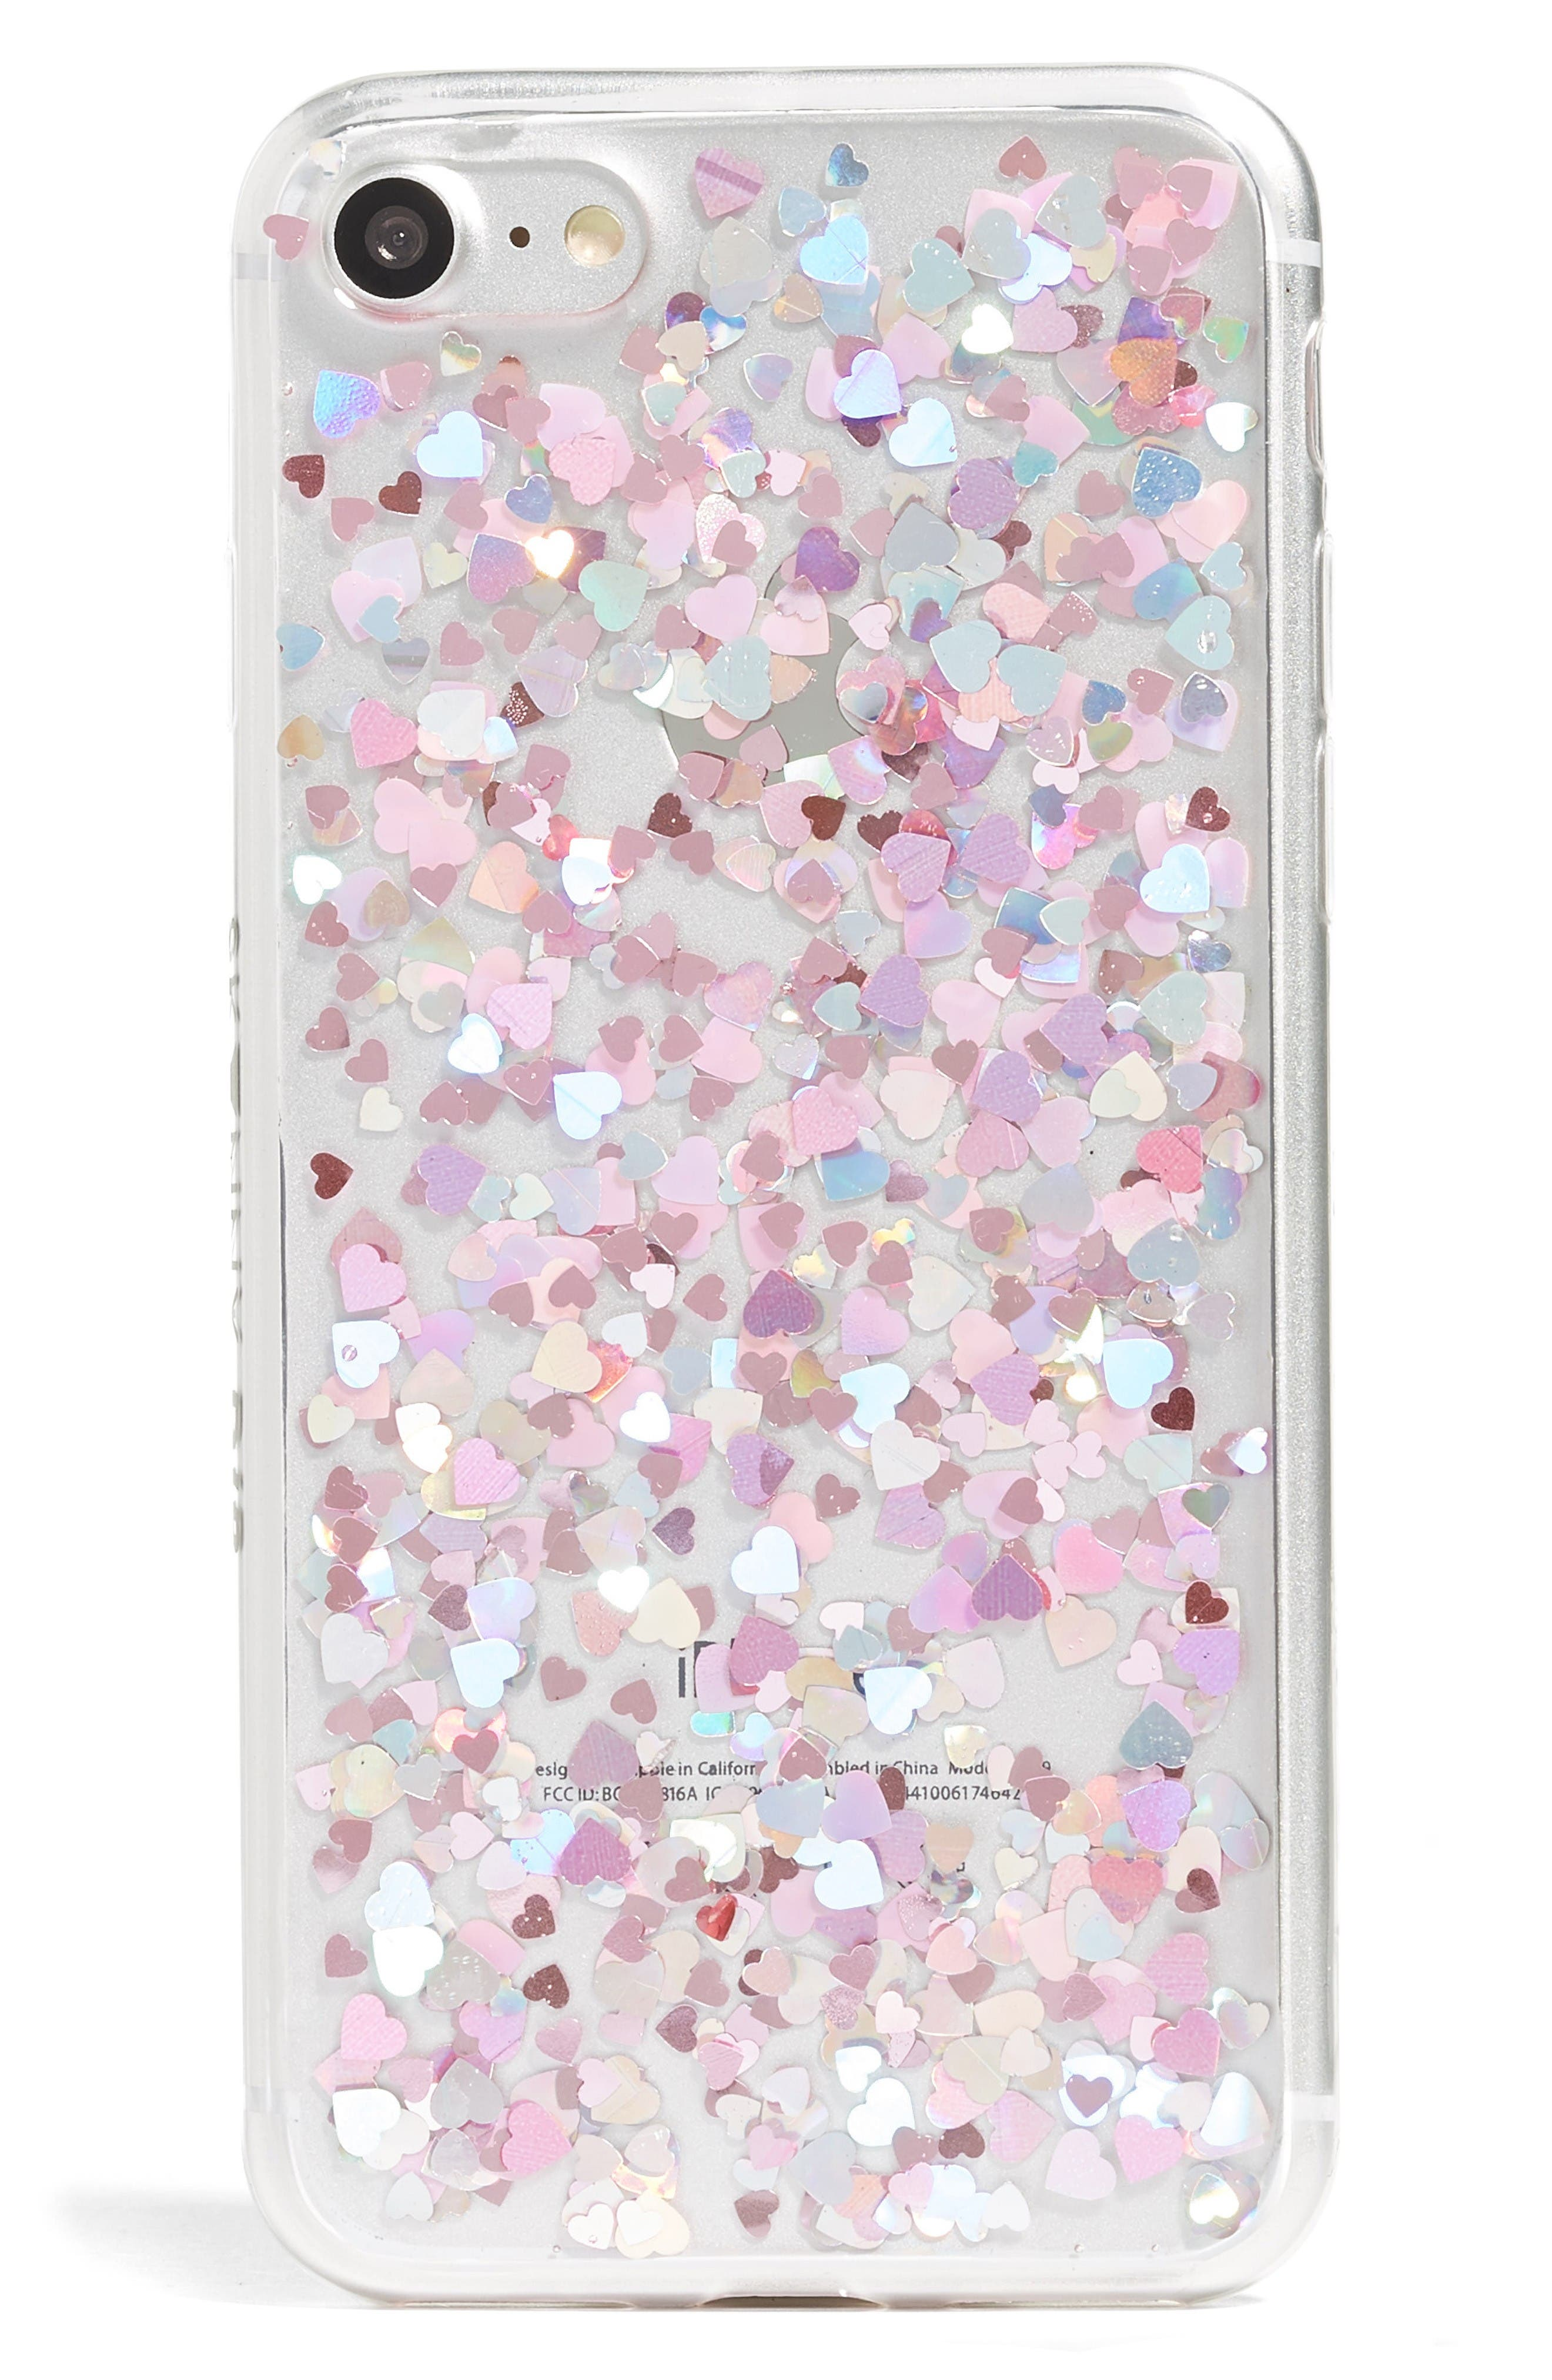 Main Image - Skinnydip Heart Sequin iPhone 6/7 Case